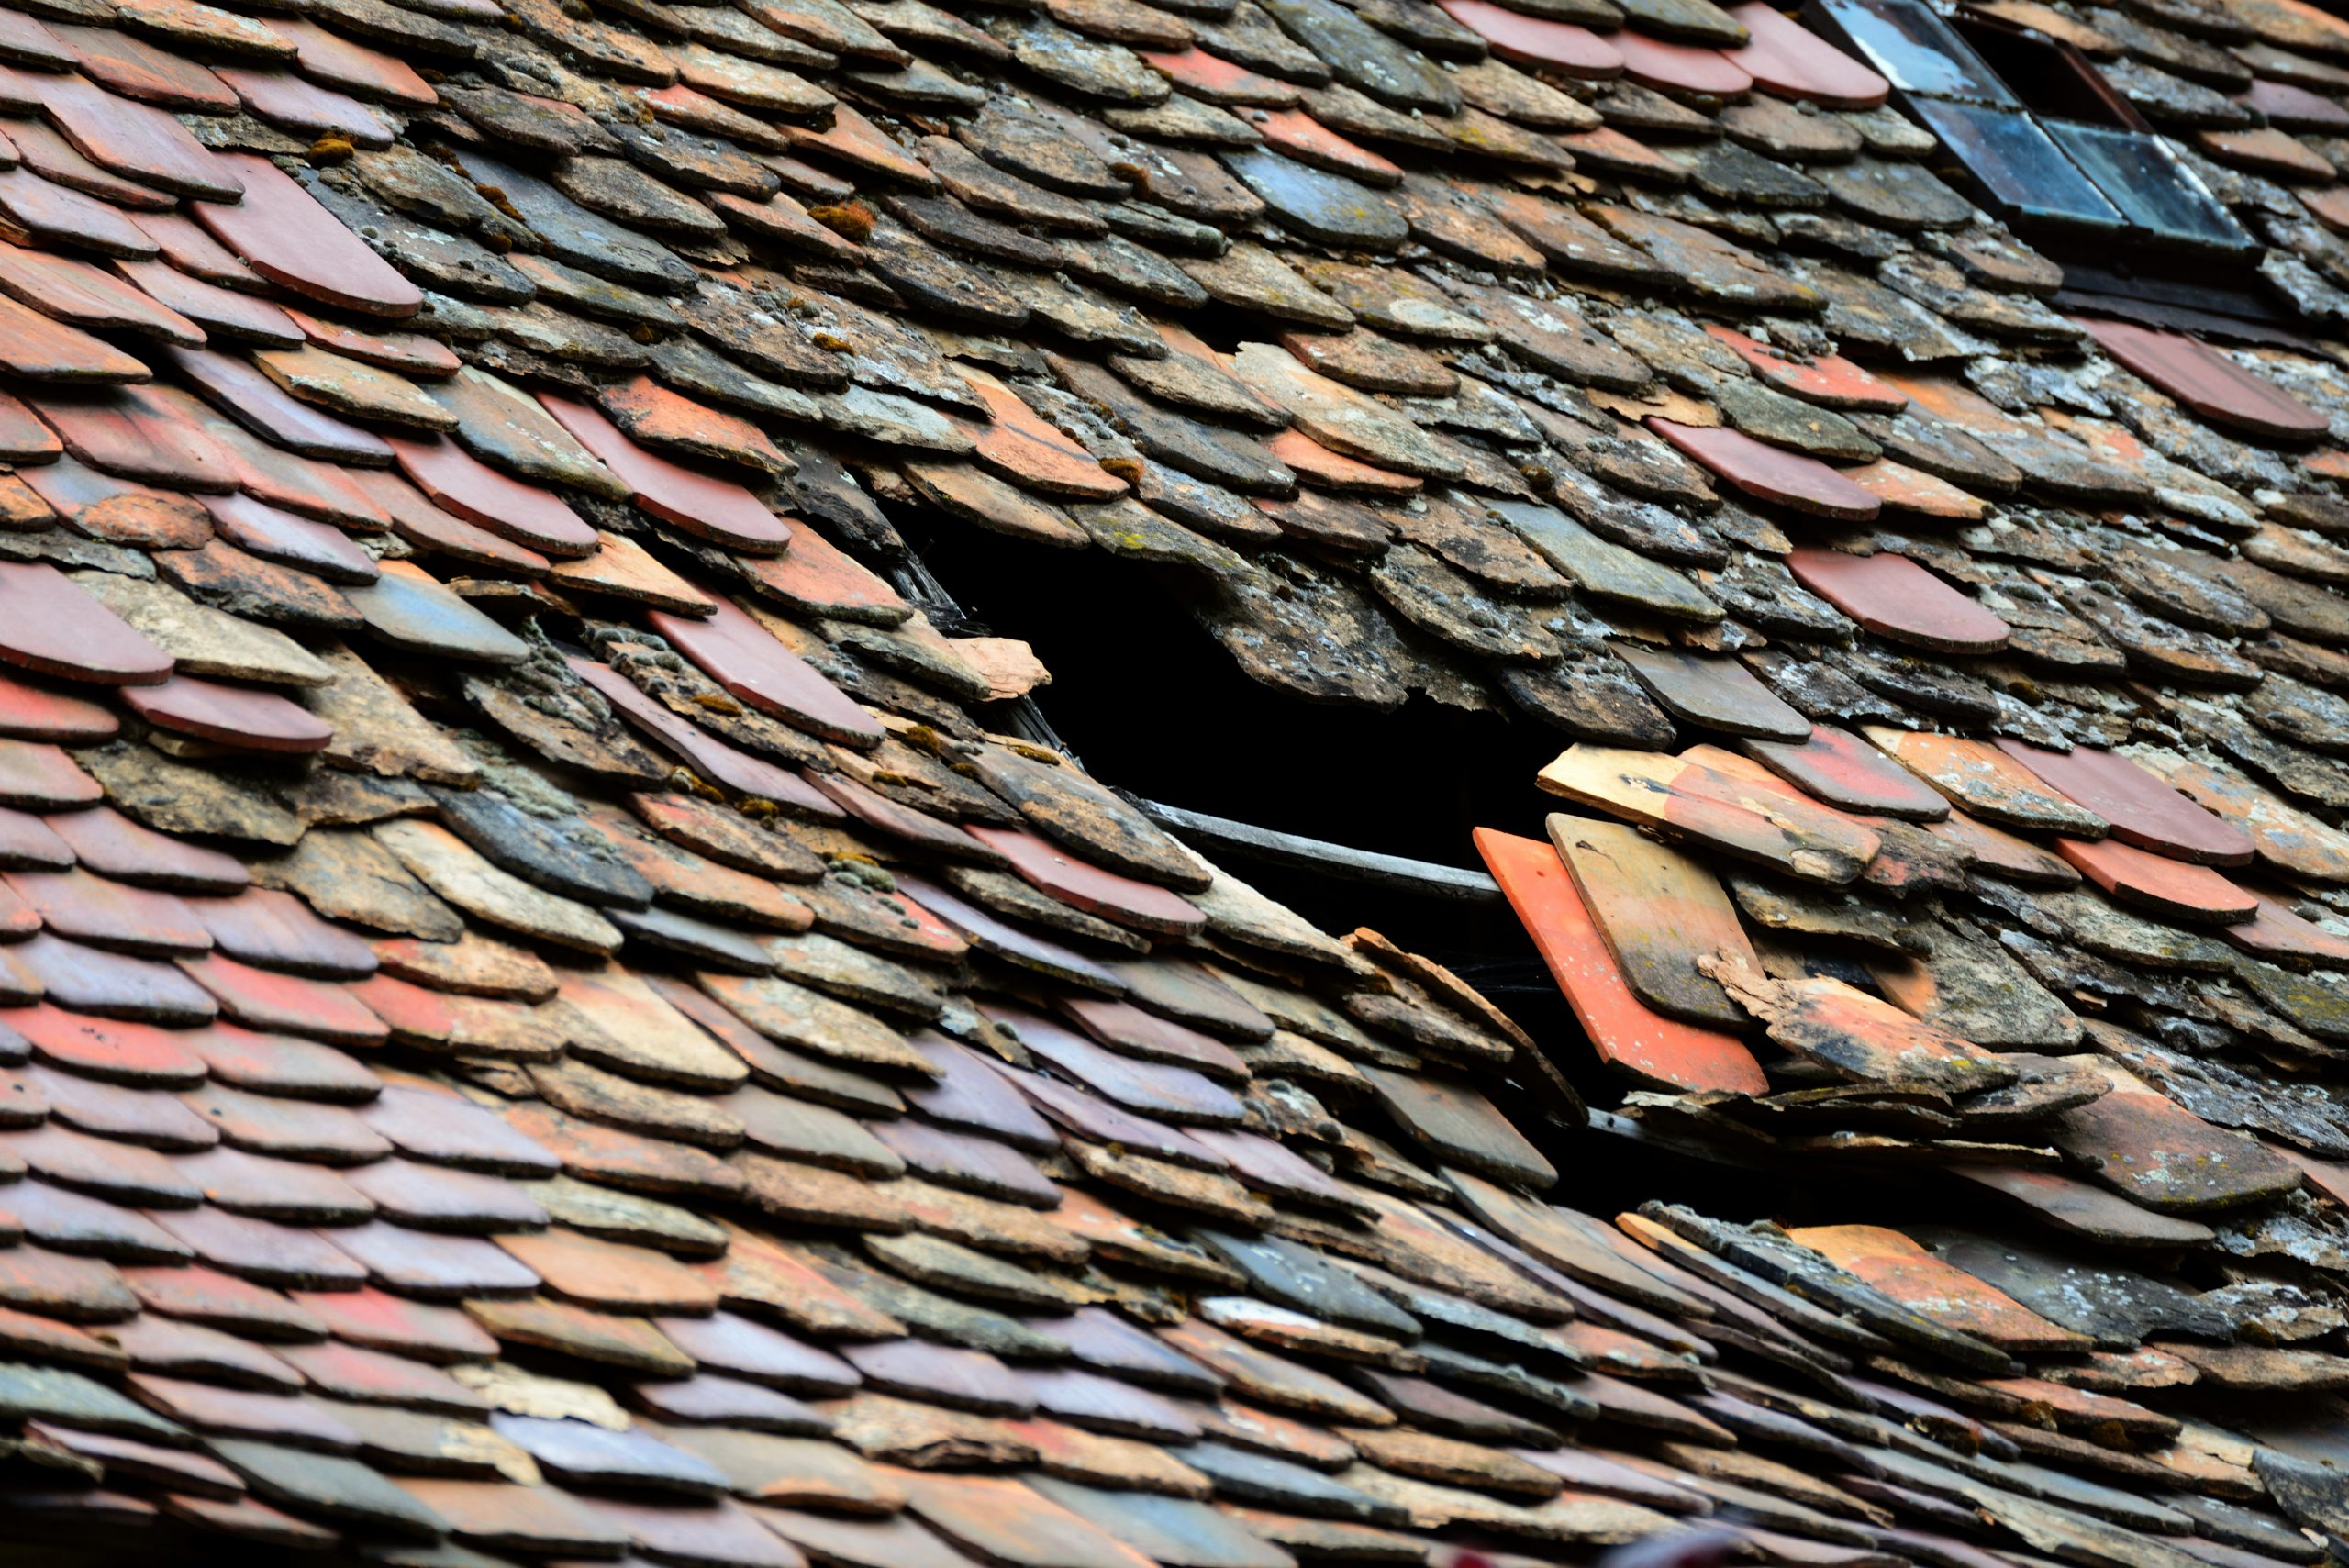 roof, roof tiles, roof damage